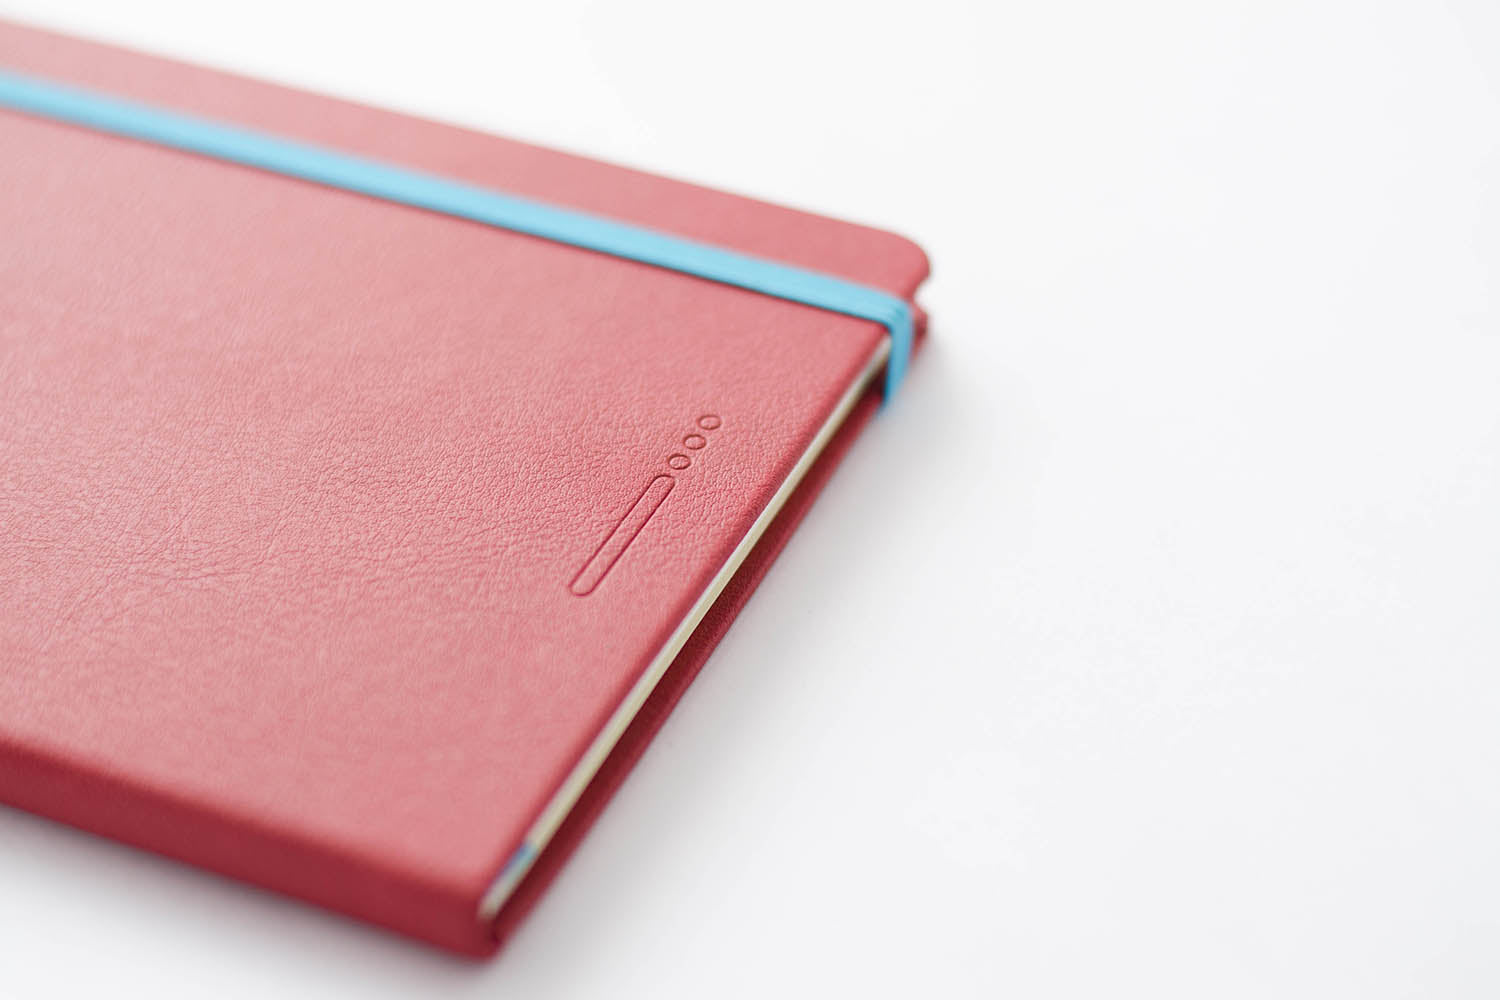 Crimson Sky red Dotted - 192 Pages Endless Recorder Tomoe River A5 Notebook